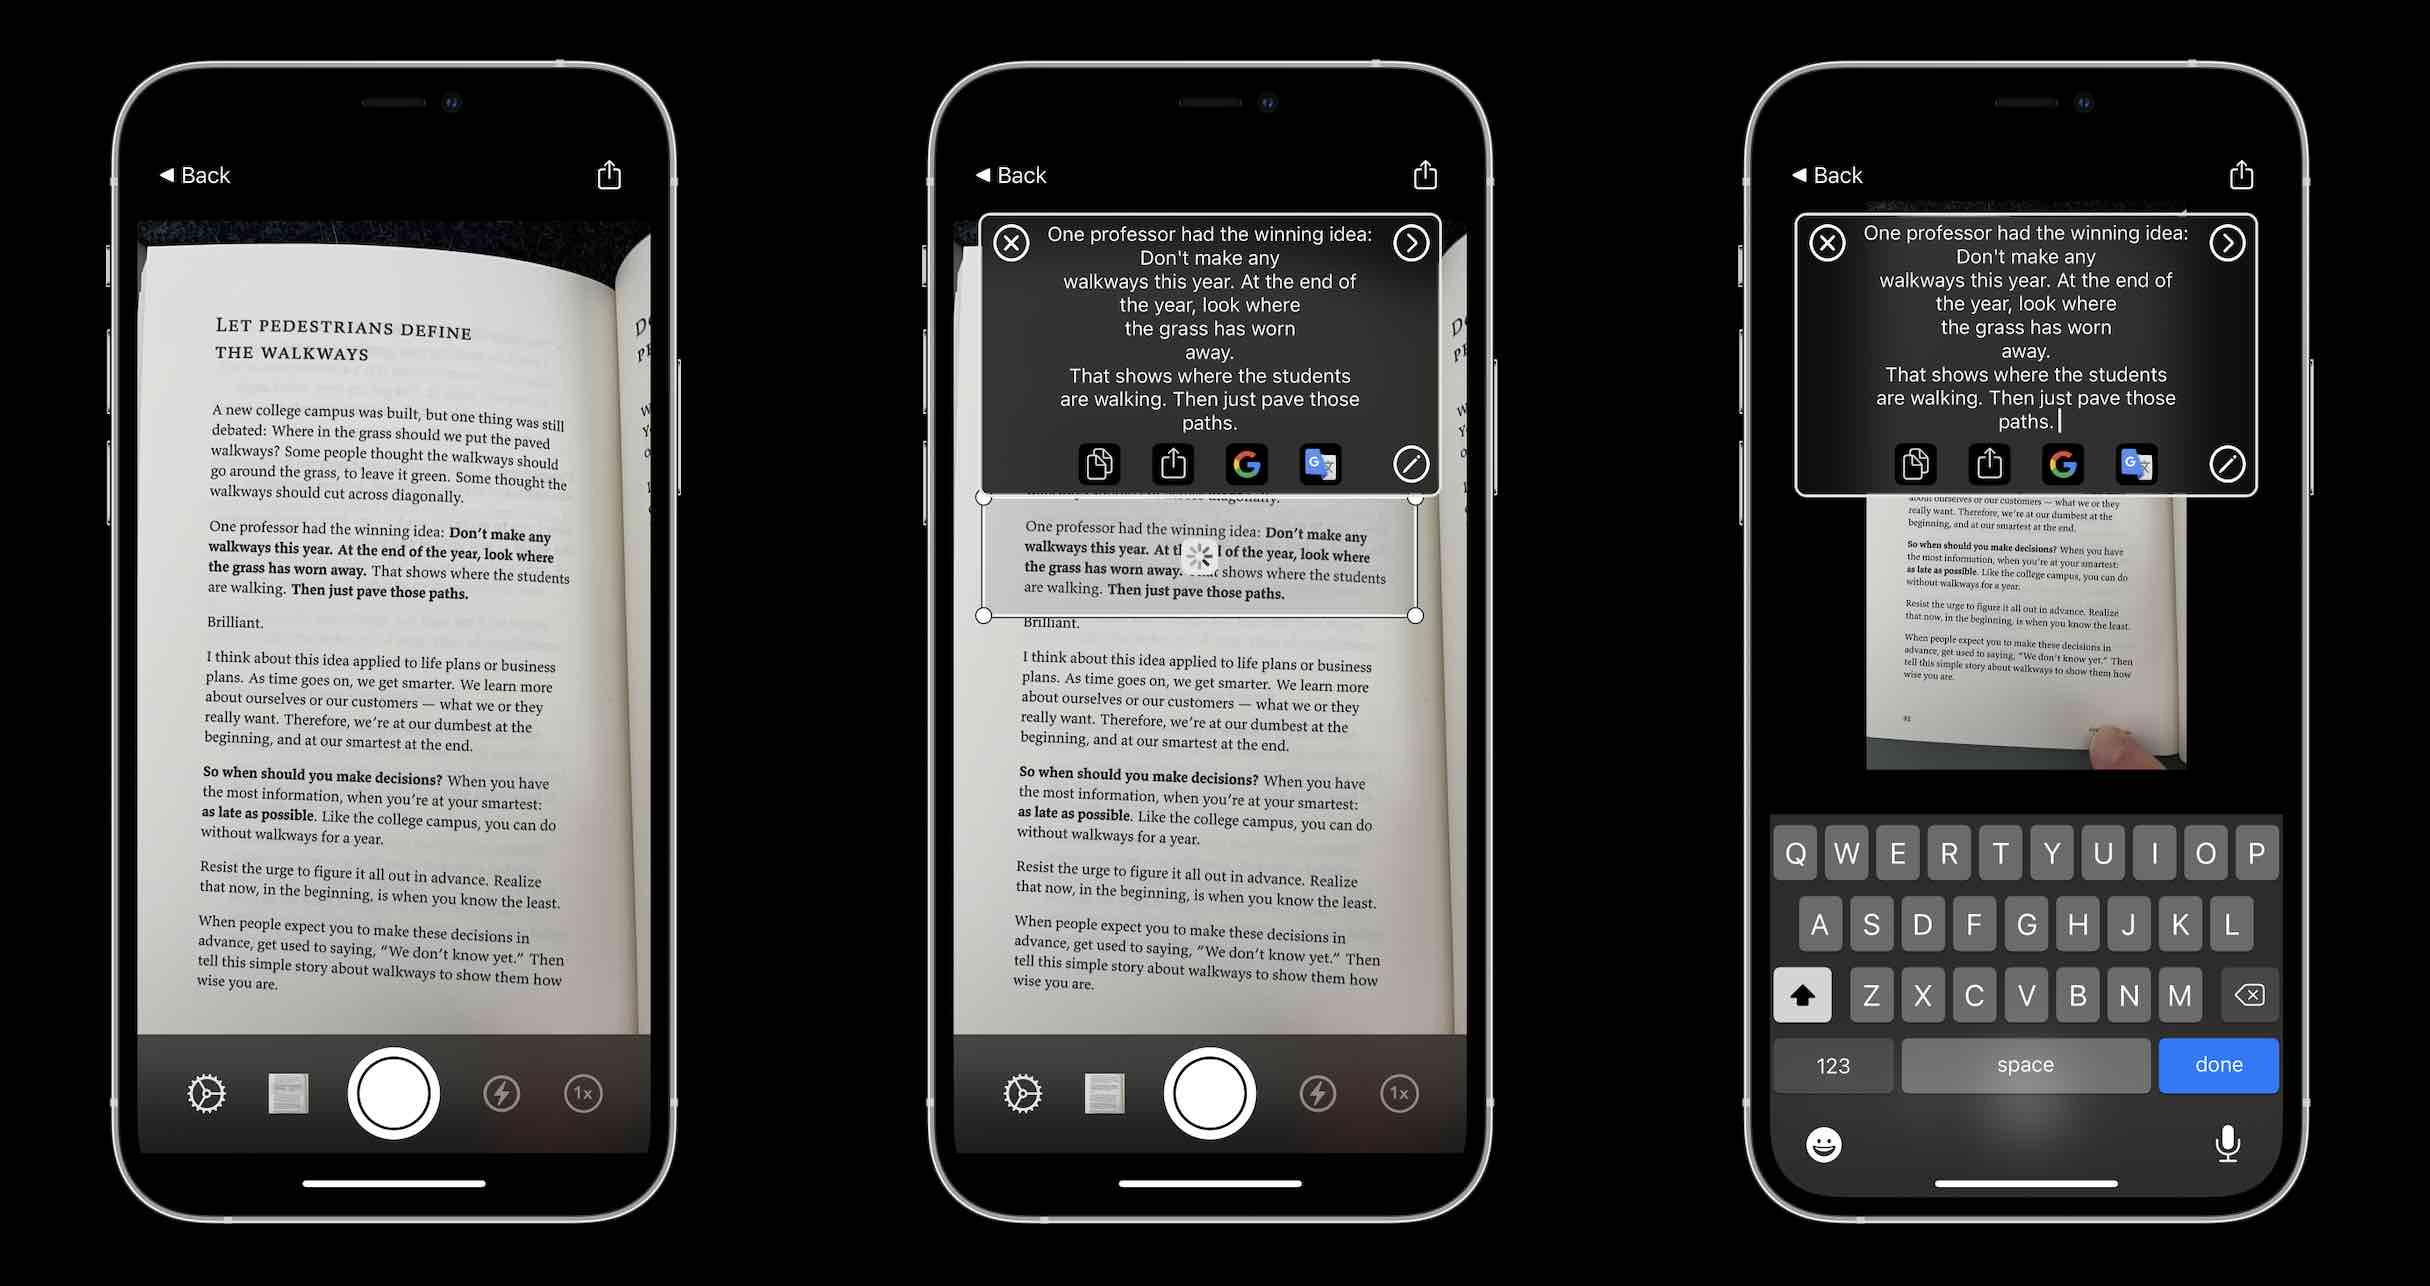 How to convert iPhone images to text - LiveScan app